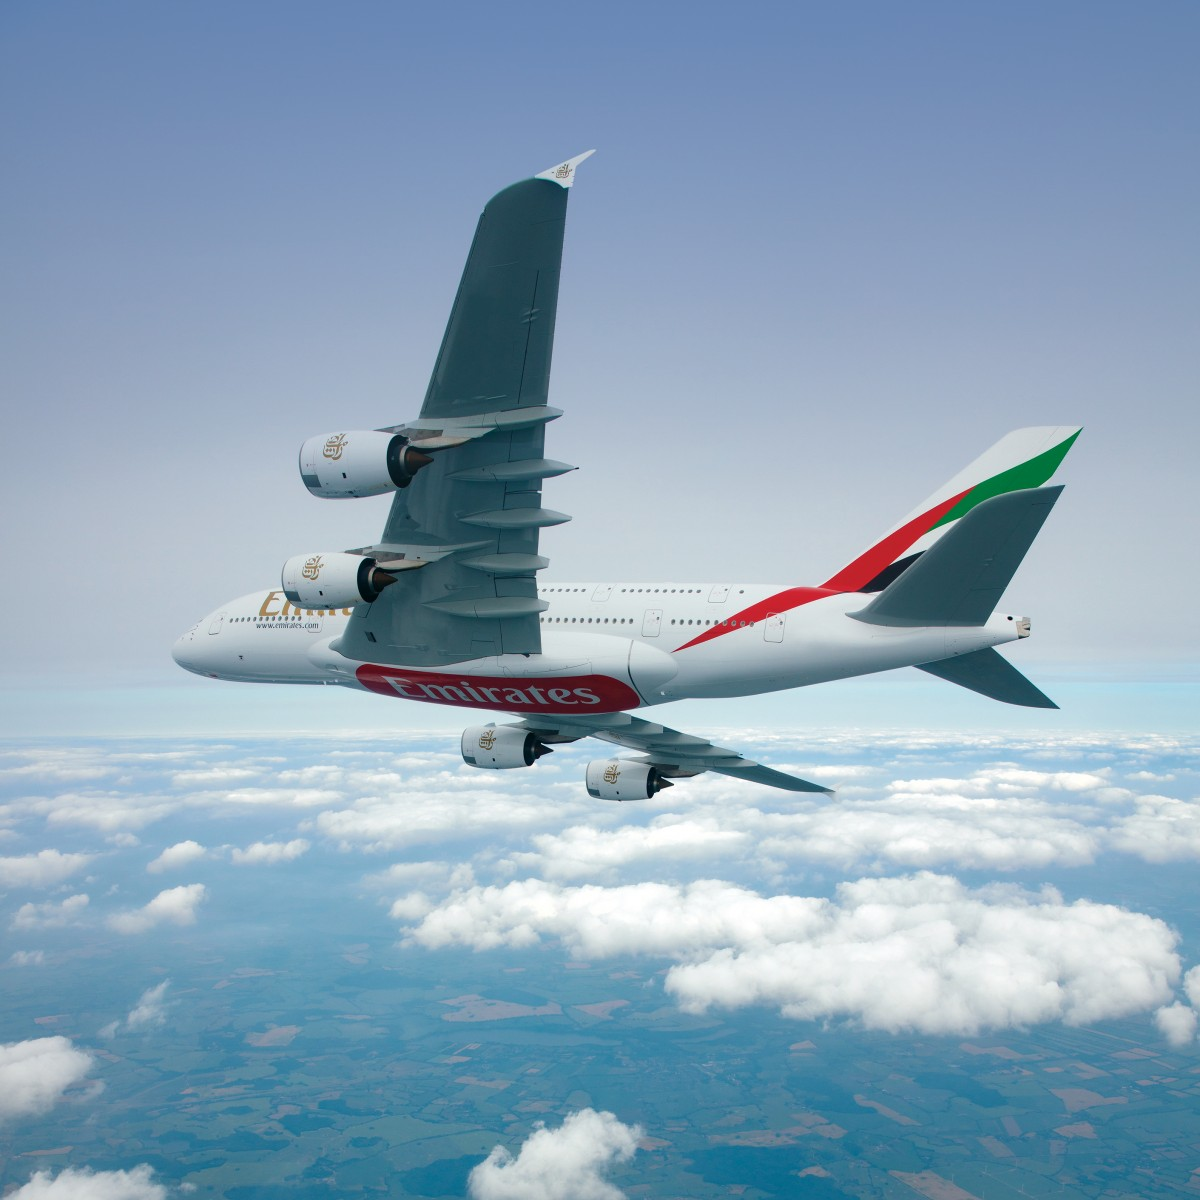 The highly popular Emirates A380 aircraft will begin serving travellers on flights to London Heathrow and Paris starting from 15 July.